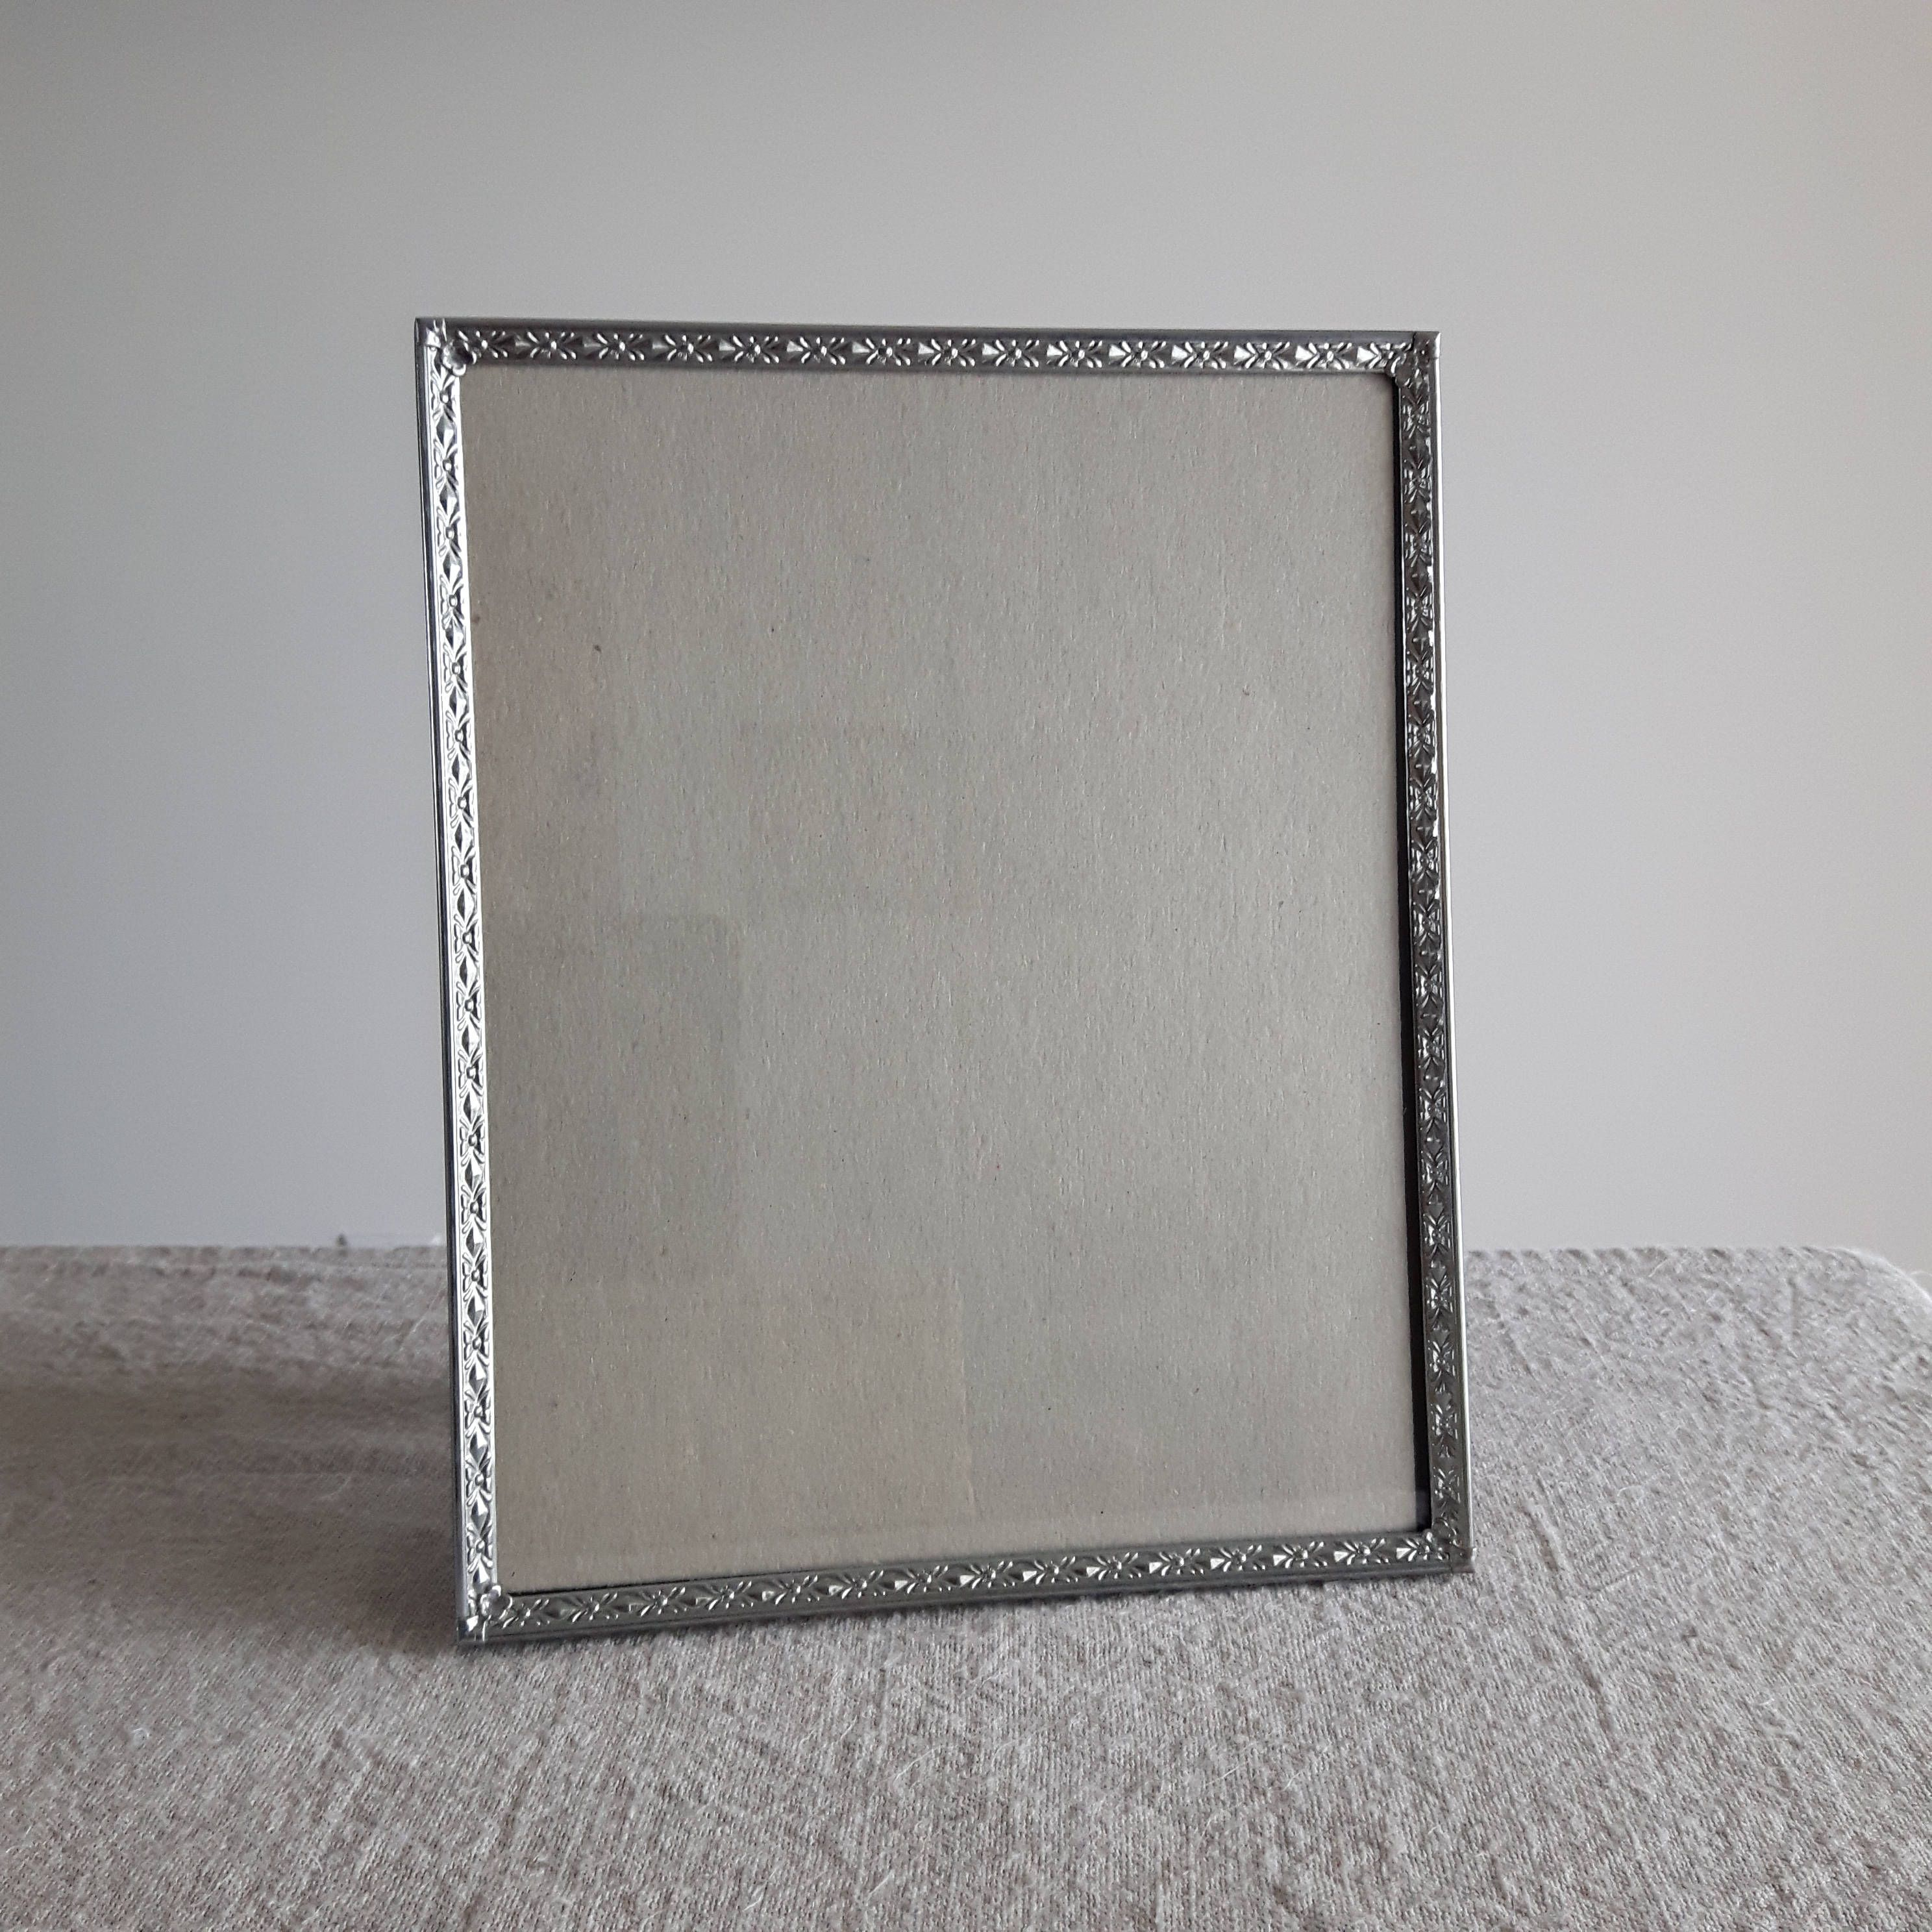 8 X 10 Silver Tone Metal Picture Frame W Moderately Detailed